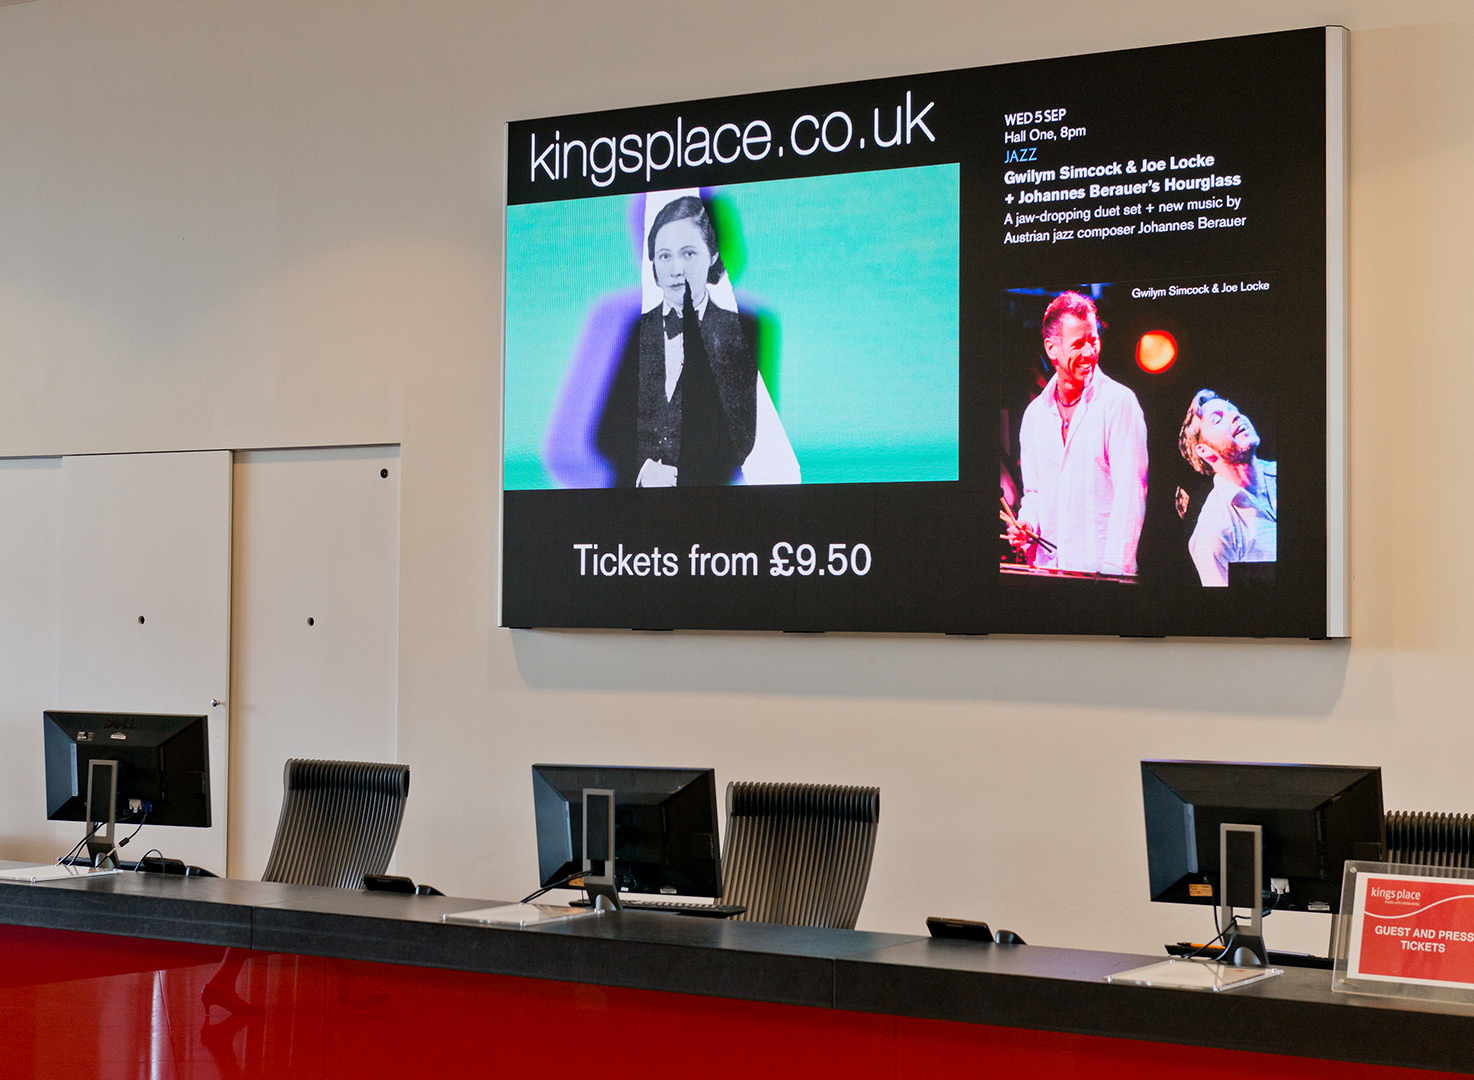 eclipse-digital-media-digital-signage-av-solutions-apetito-customer-visitor-centre-case-study-customer-waiting-area-1aeclipse digital media - digital signage and av solutions - apetito customer visitor centre - reception and customer waiting area